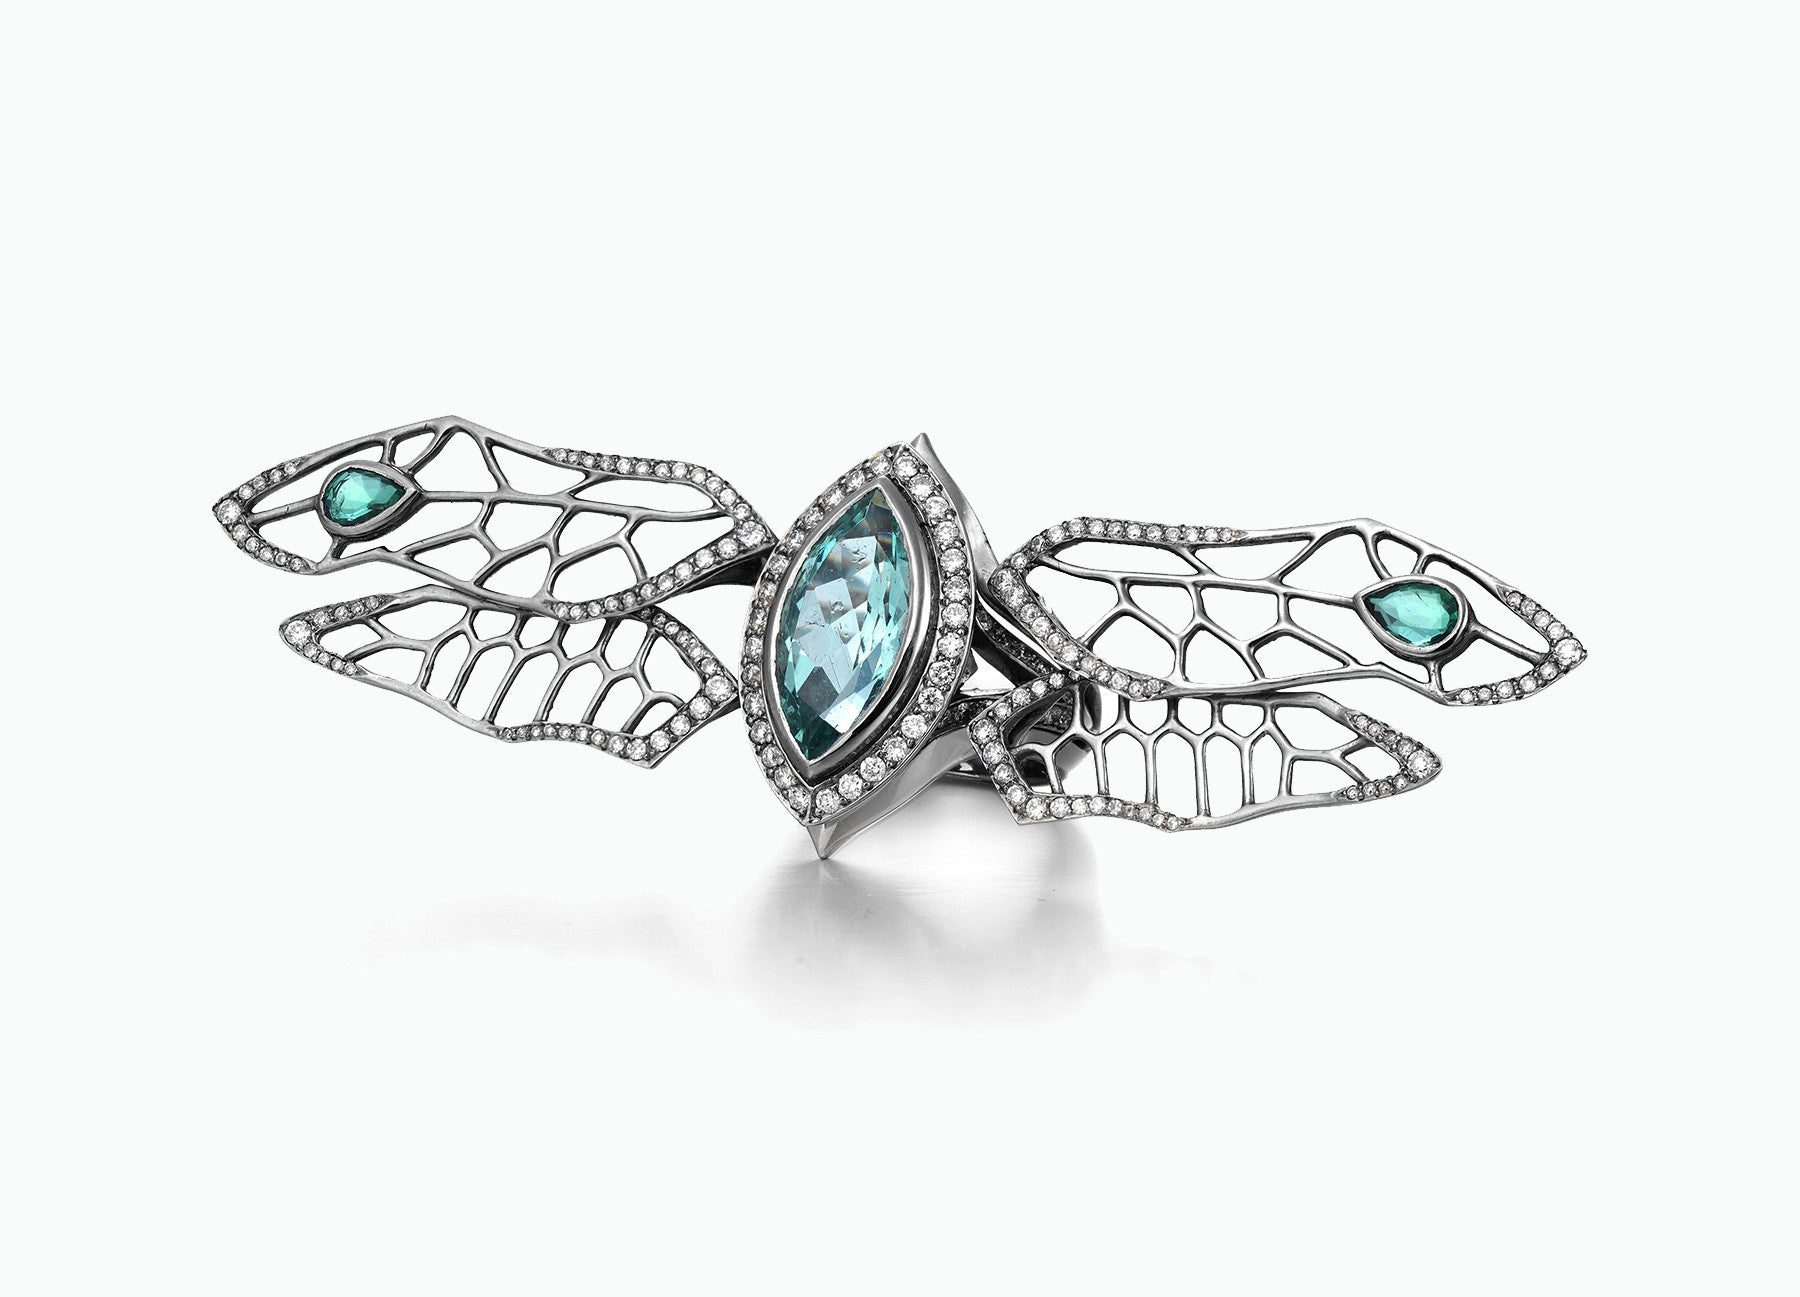 accent ip com engagement gold rings ring over silver walmart diamond dragonfly sterling